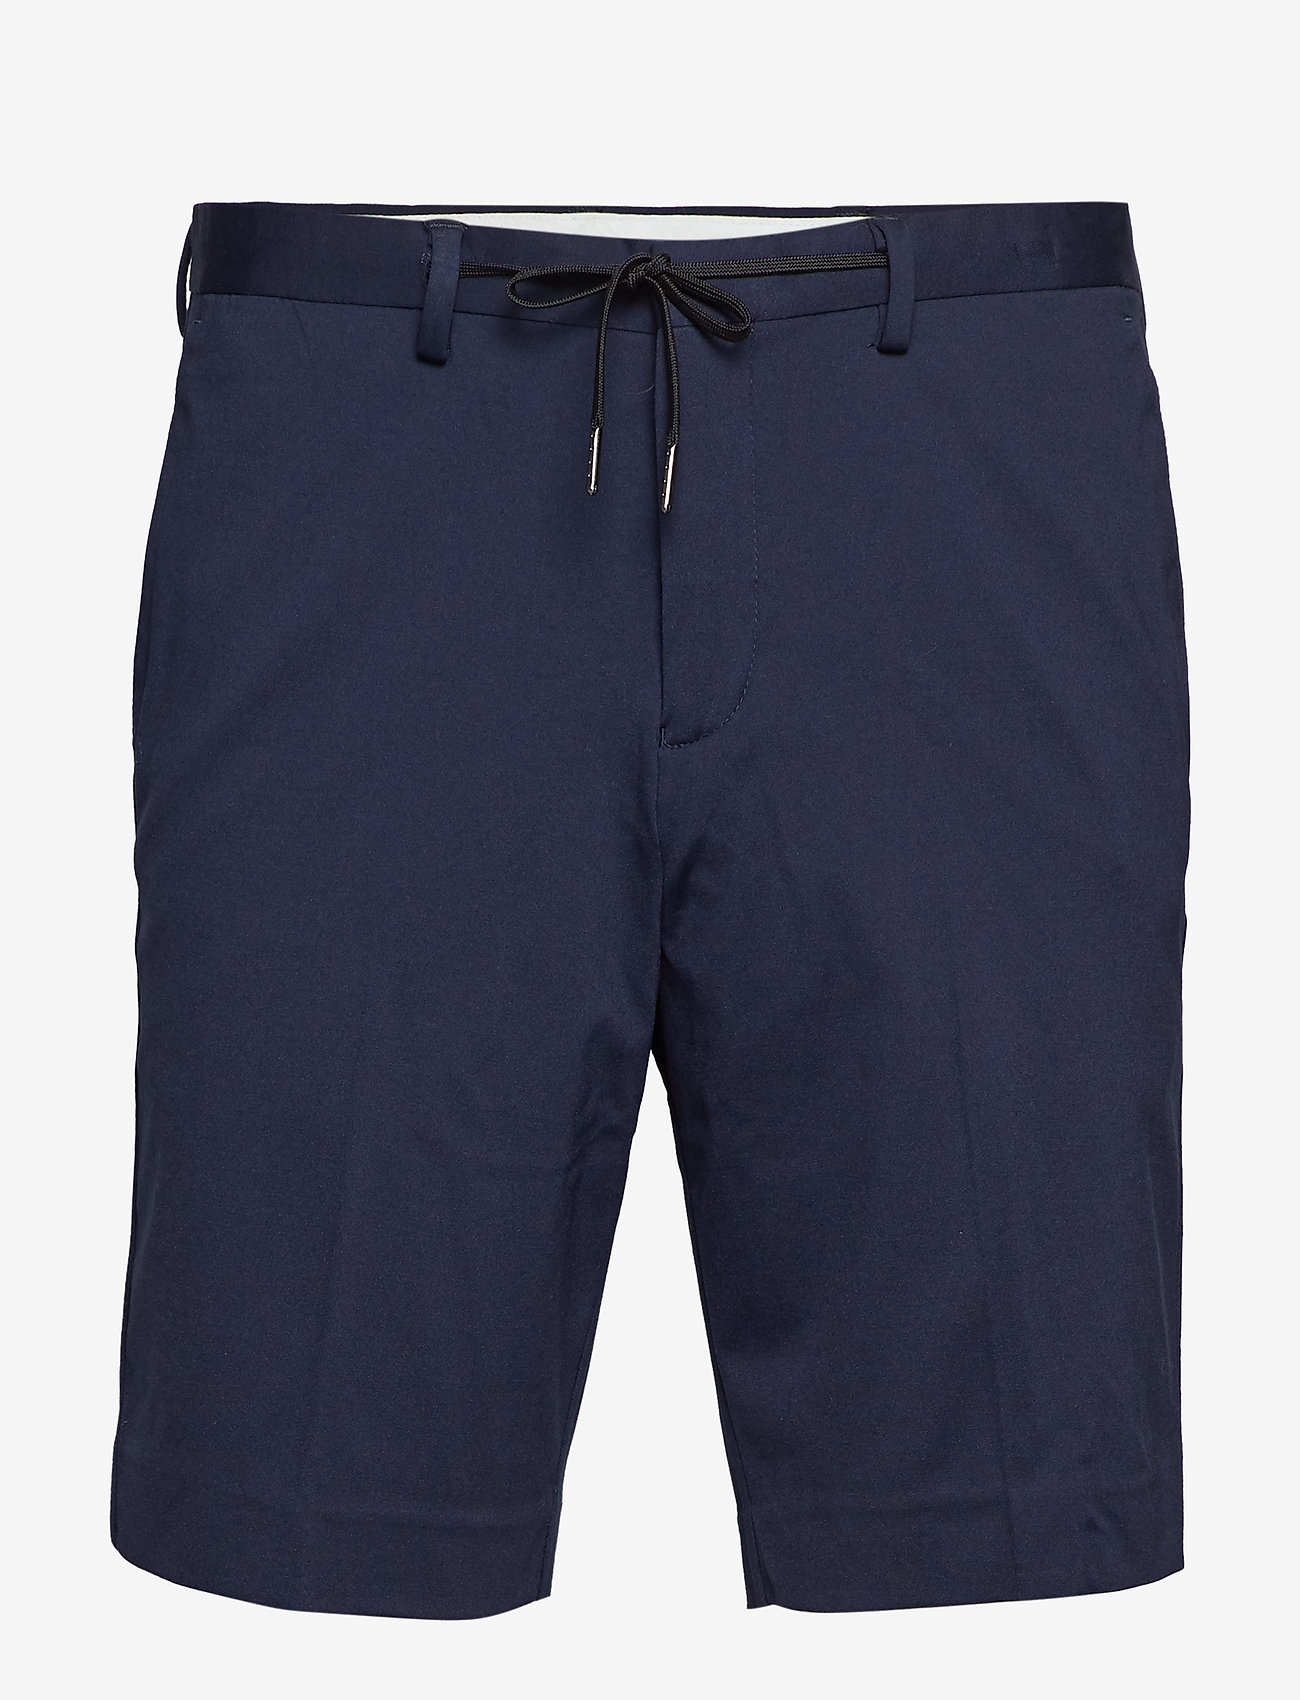 Selected Homme - SLHTAPERED-AIR SHORTS B - casual shorts - dark sapphire - 0